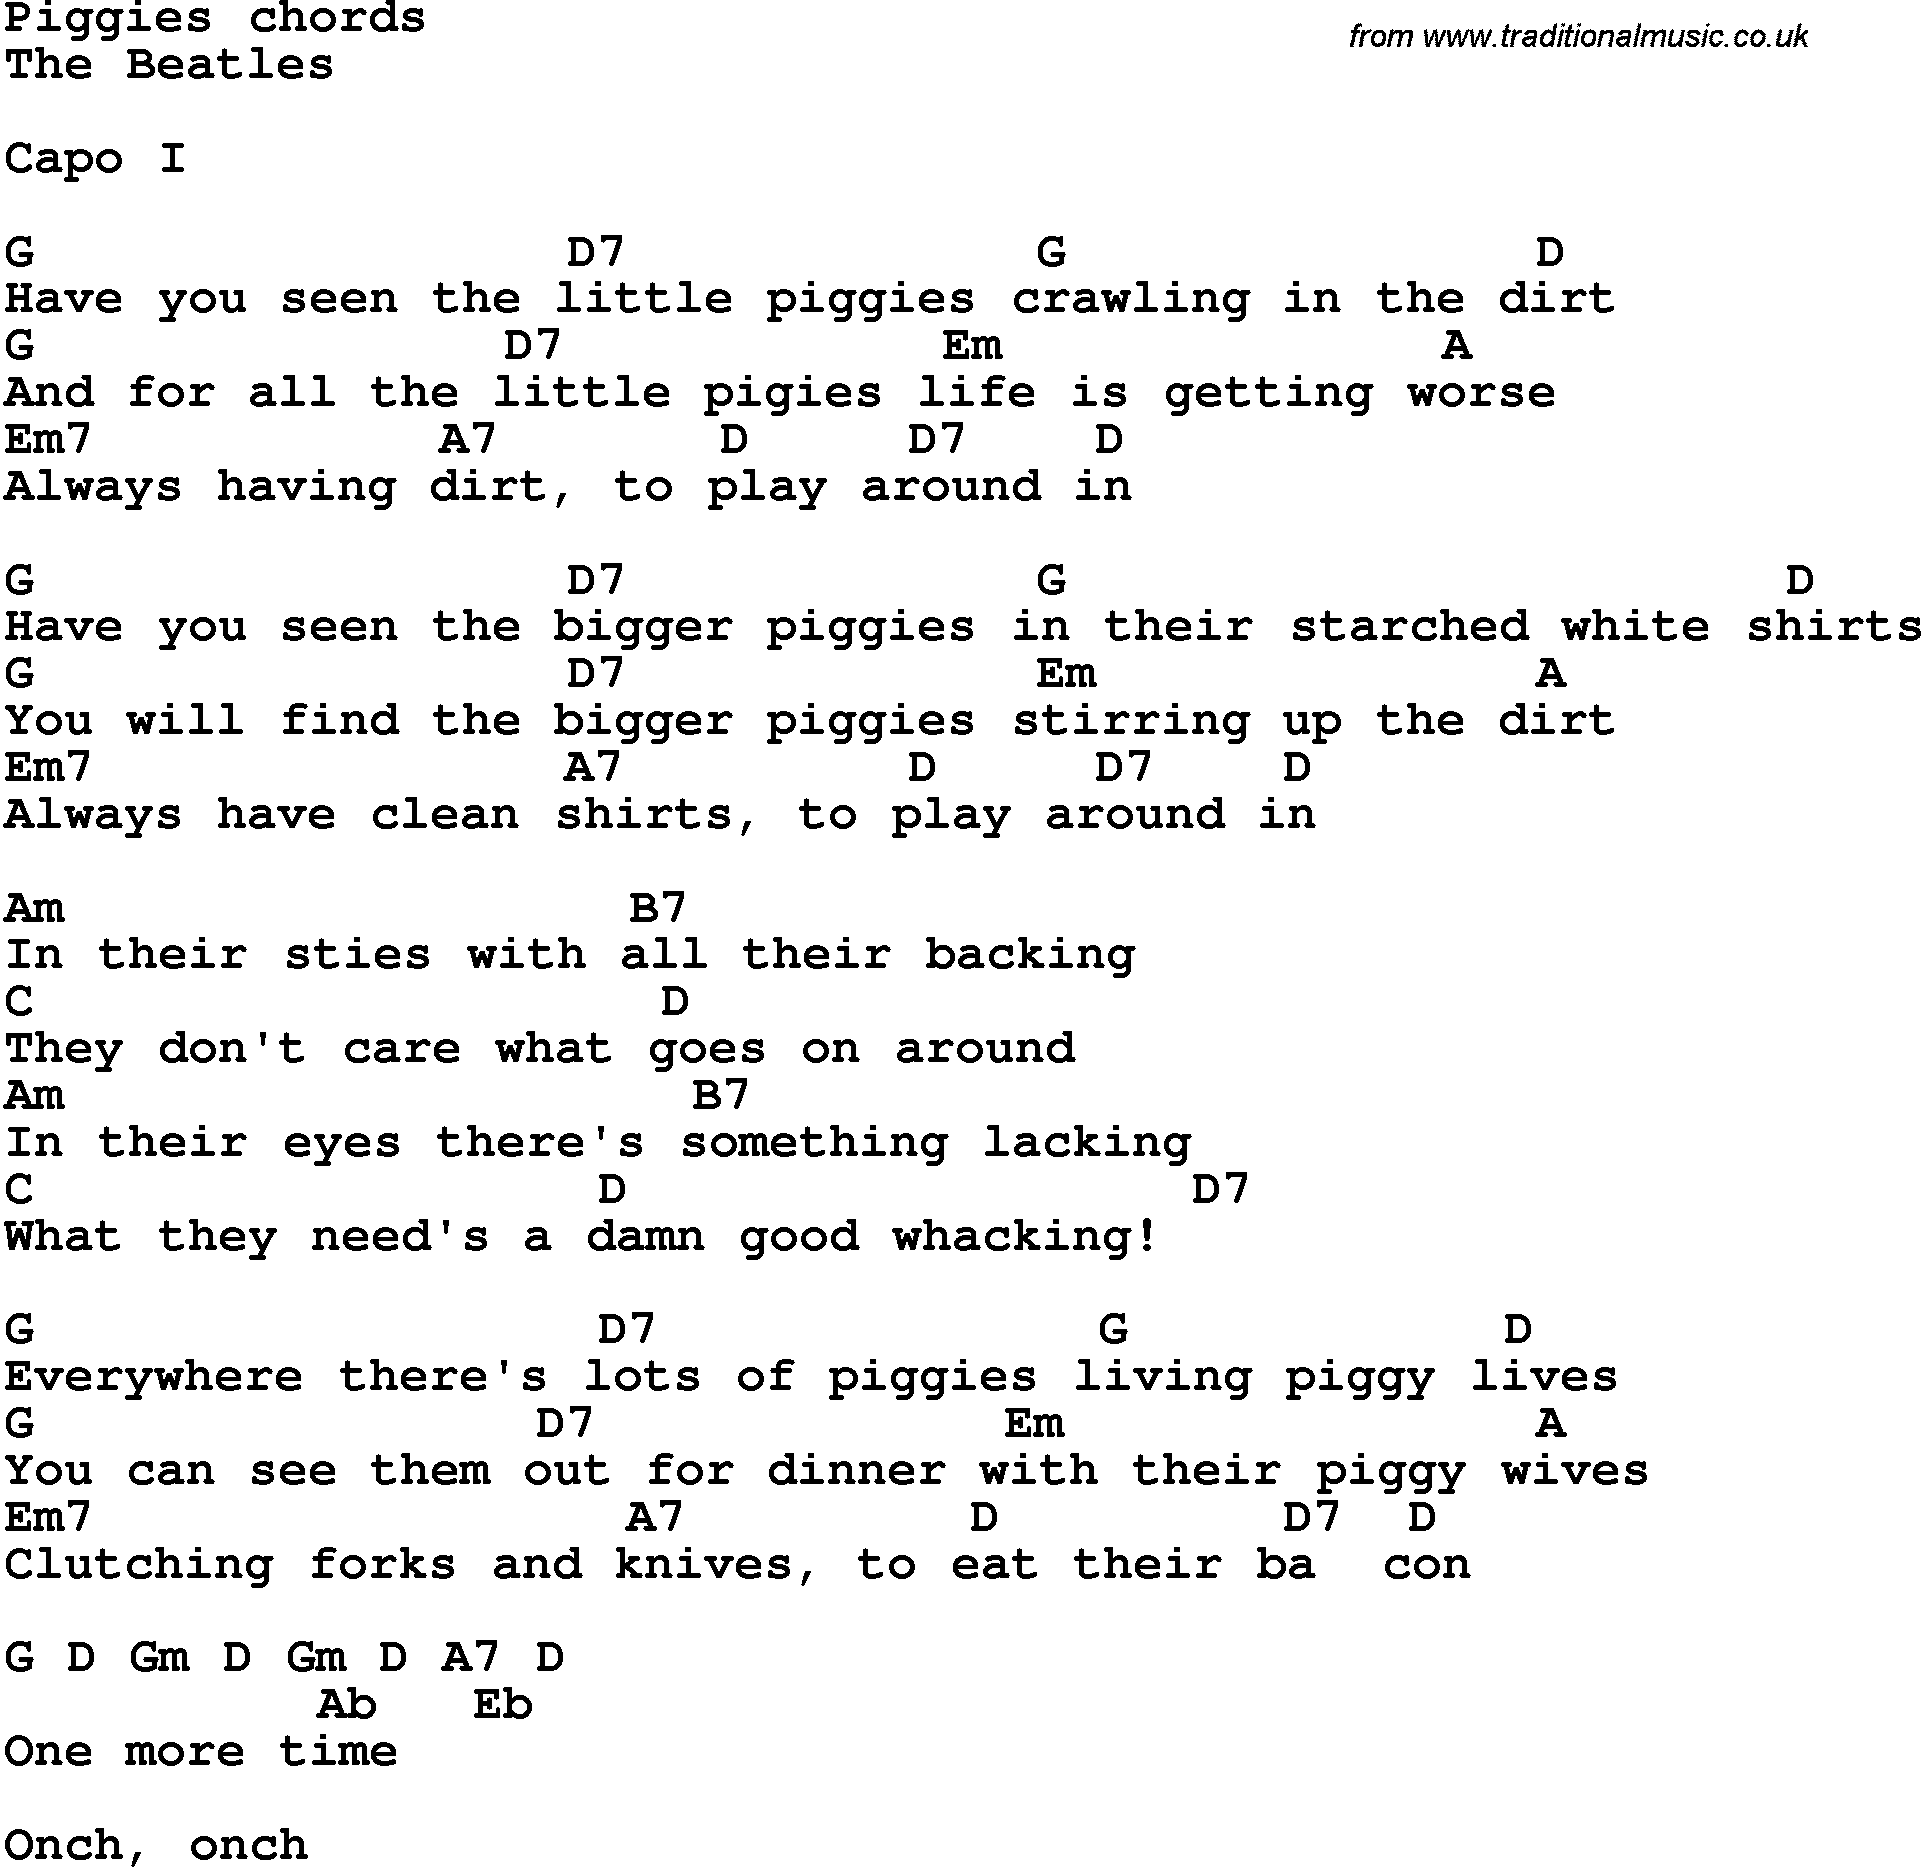 Song Lyrics With Guitar Chords For Piggies The Beatles Music